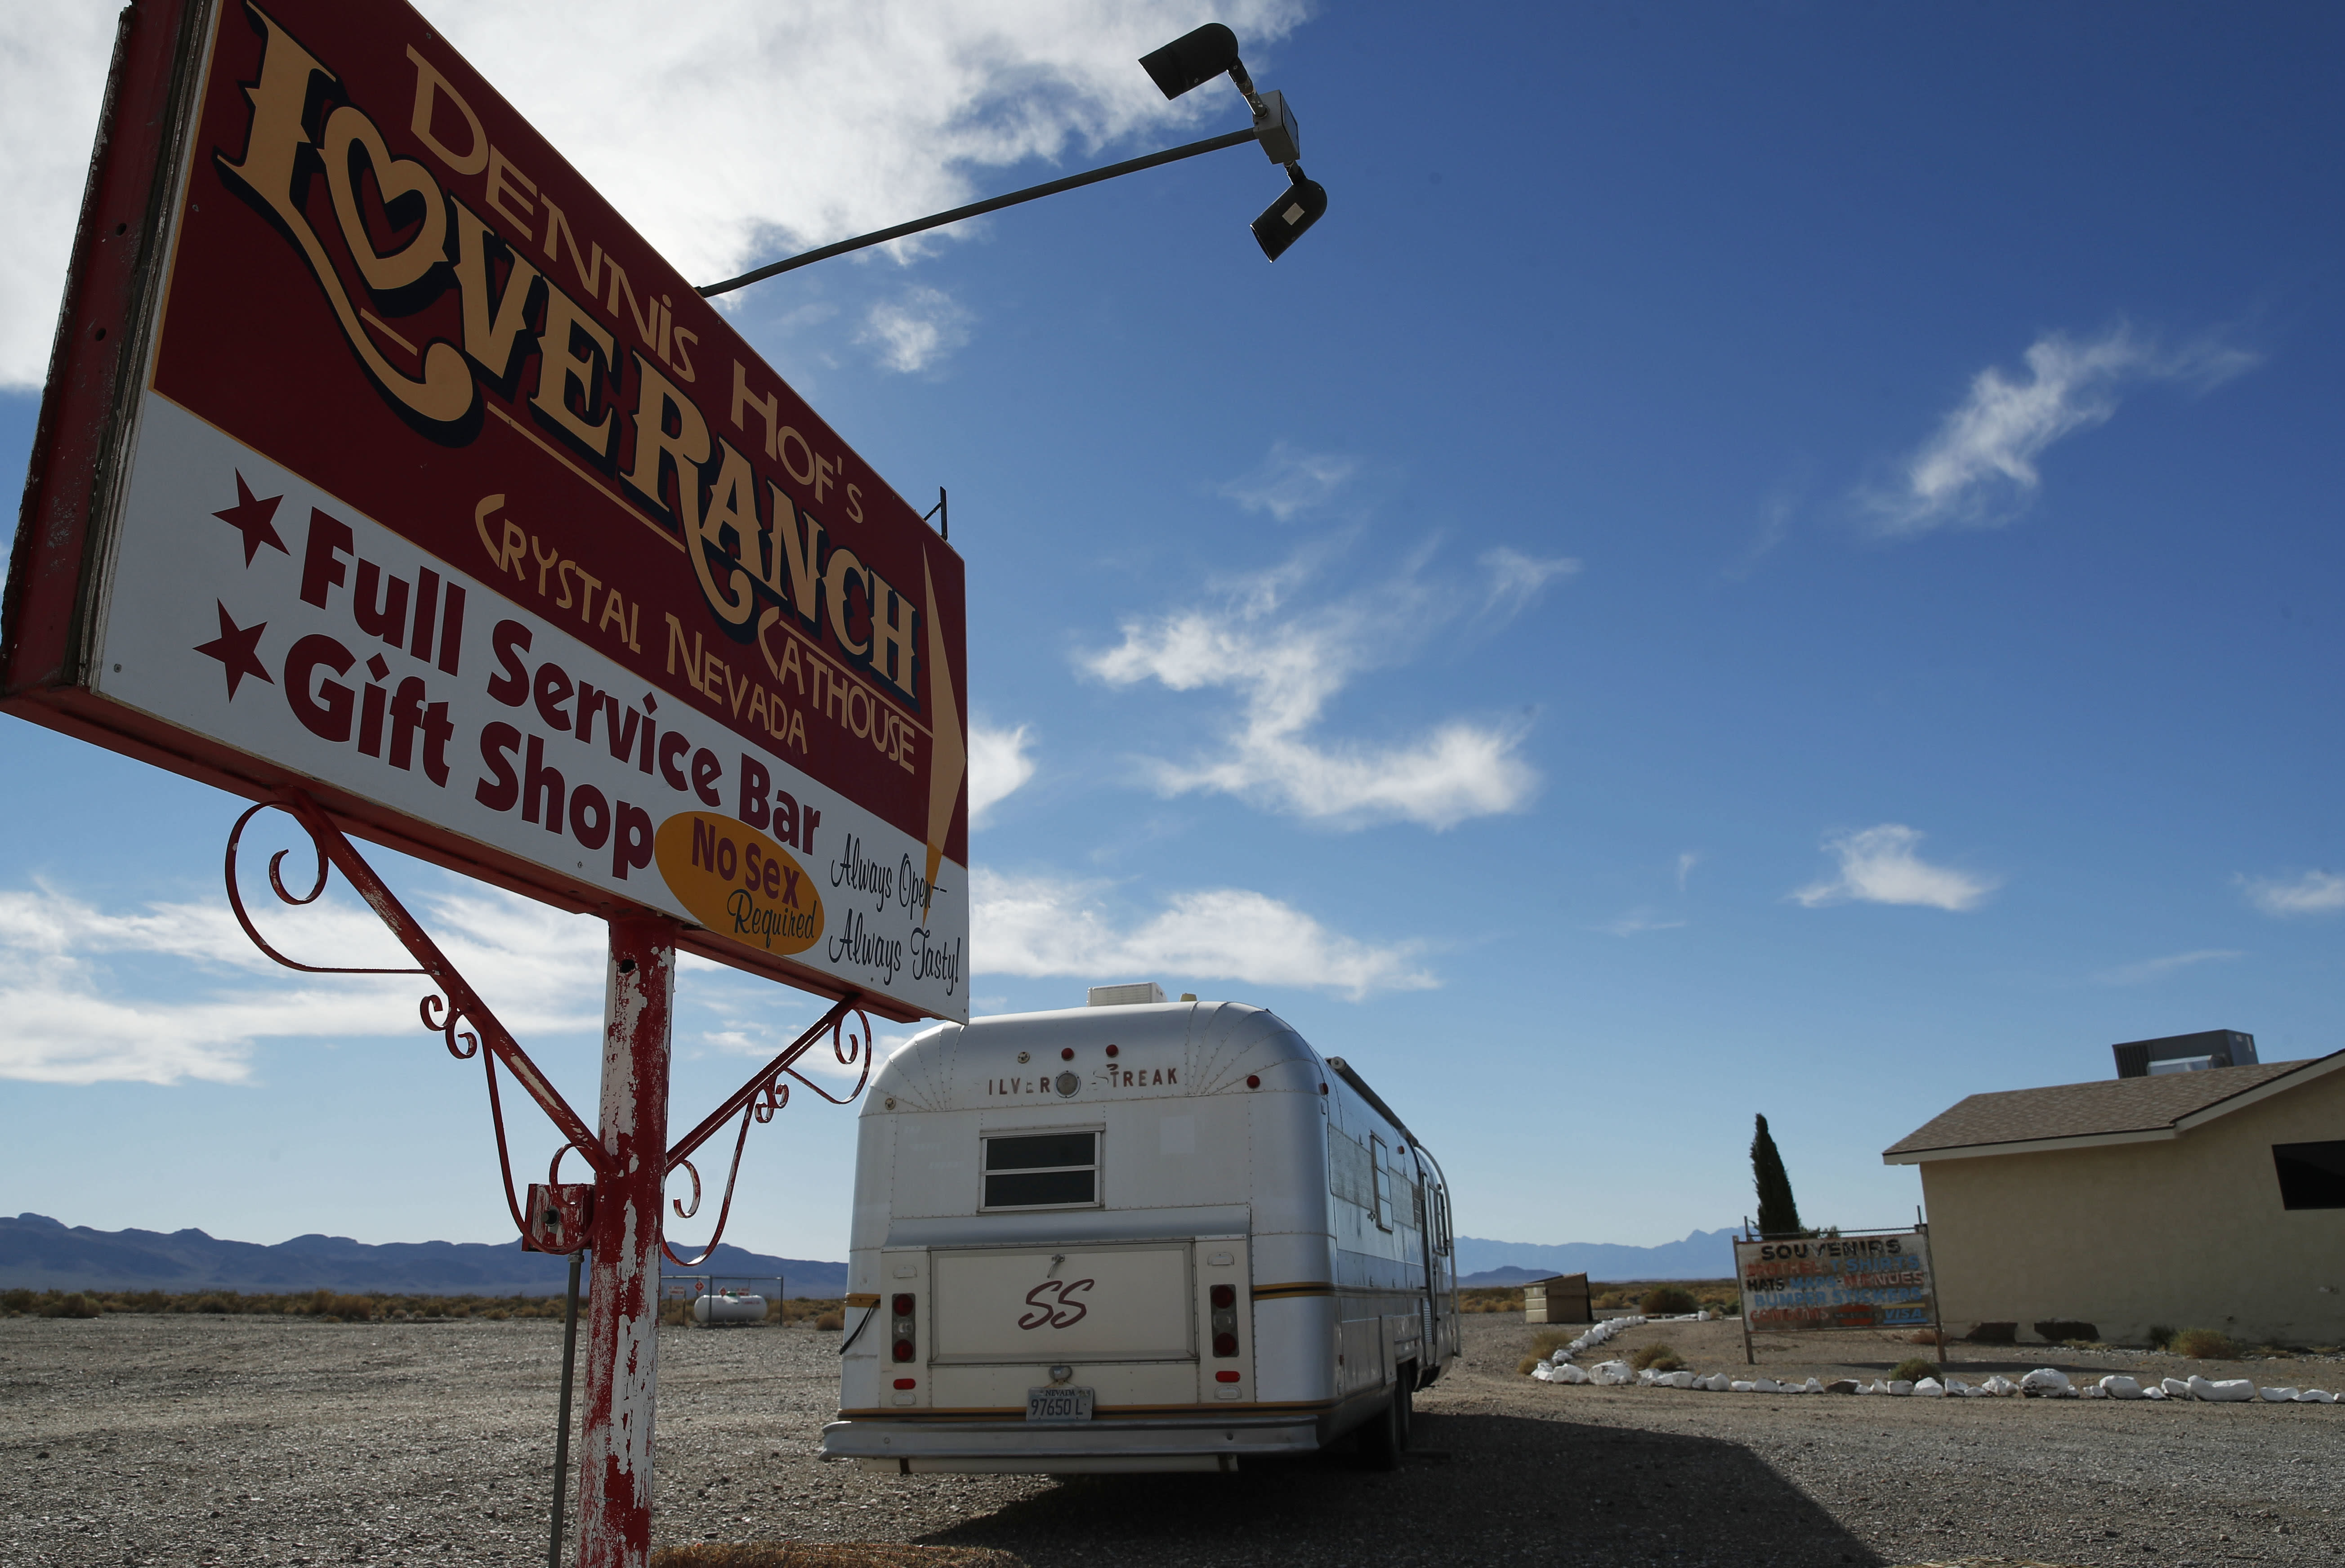 File - In this Oct. 16, 2018, file photo, a sign advertises the Love Ranch brothel in Pahrump, Nev. A federal judge in Nevada has dismissed a lawsuit that invoked sex trafficking laws in a bid to close the nation's only legal brothels. U.S. District Judge Miranda Du in Reno cited jurisdictional grounds, after saying in her Tuesday, Oct. 29, 2019, ruling that she empathizes with the three women who claim they were sexual violence victims in Nevada and other states. The women live in Texas, and the judge says she's not convinced the profound harm they say they suffered was due to Nevada prostitution laws. (AP Photo/John Locher, File)